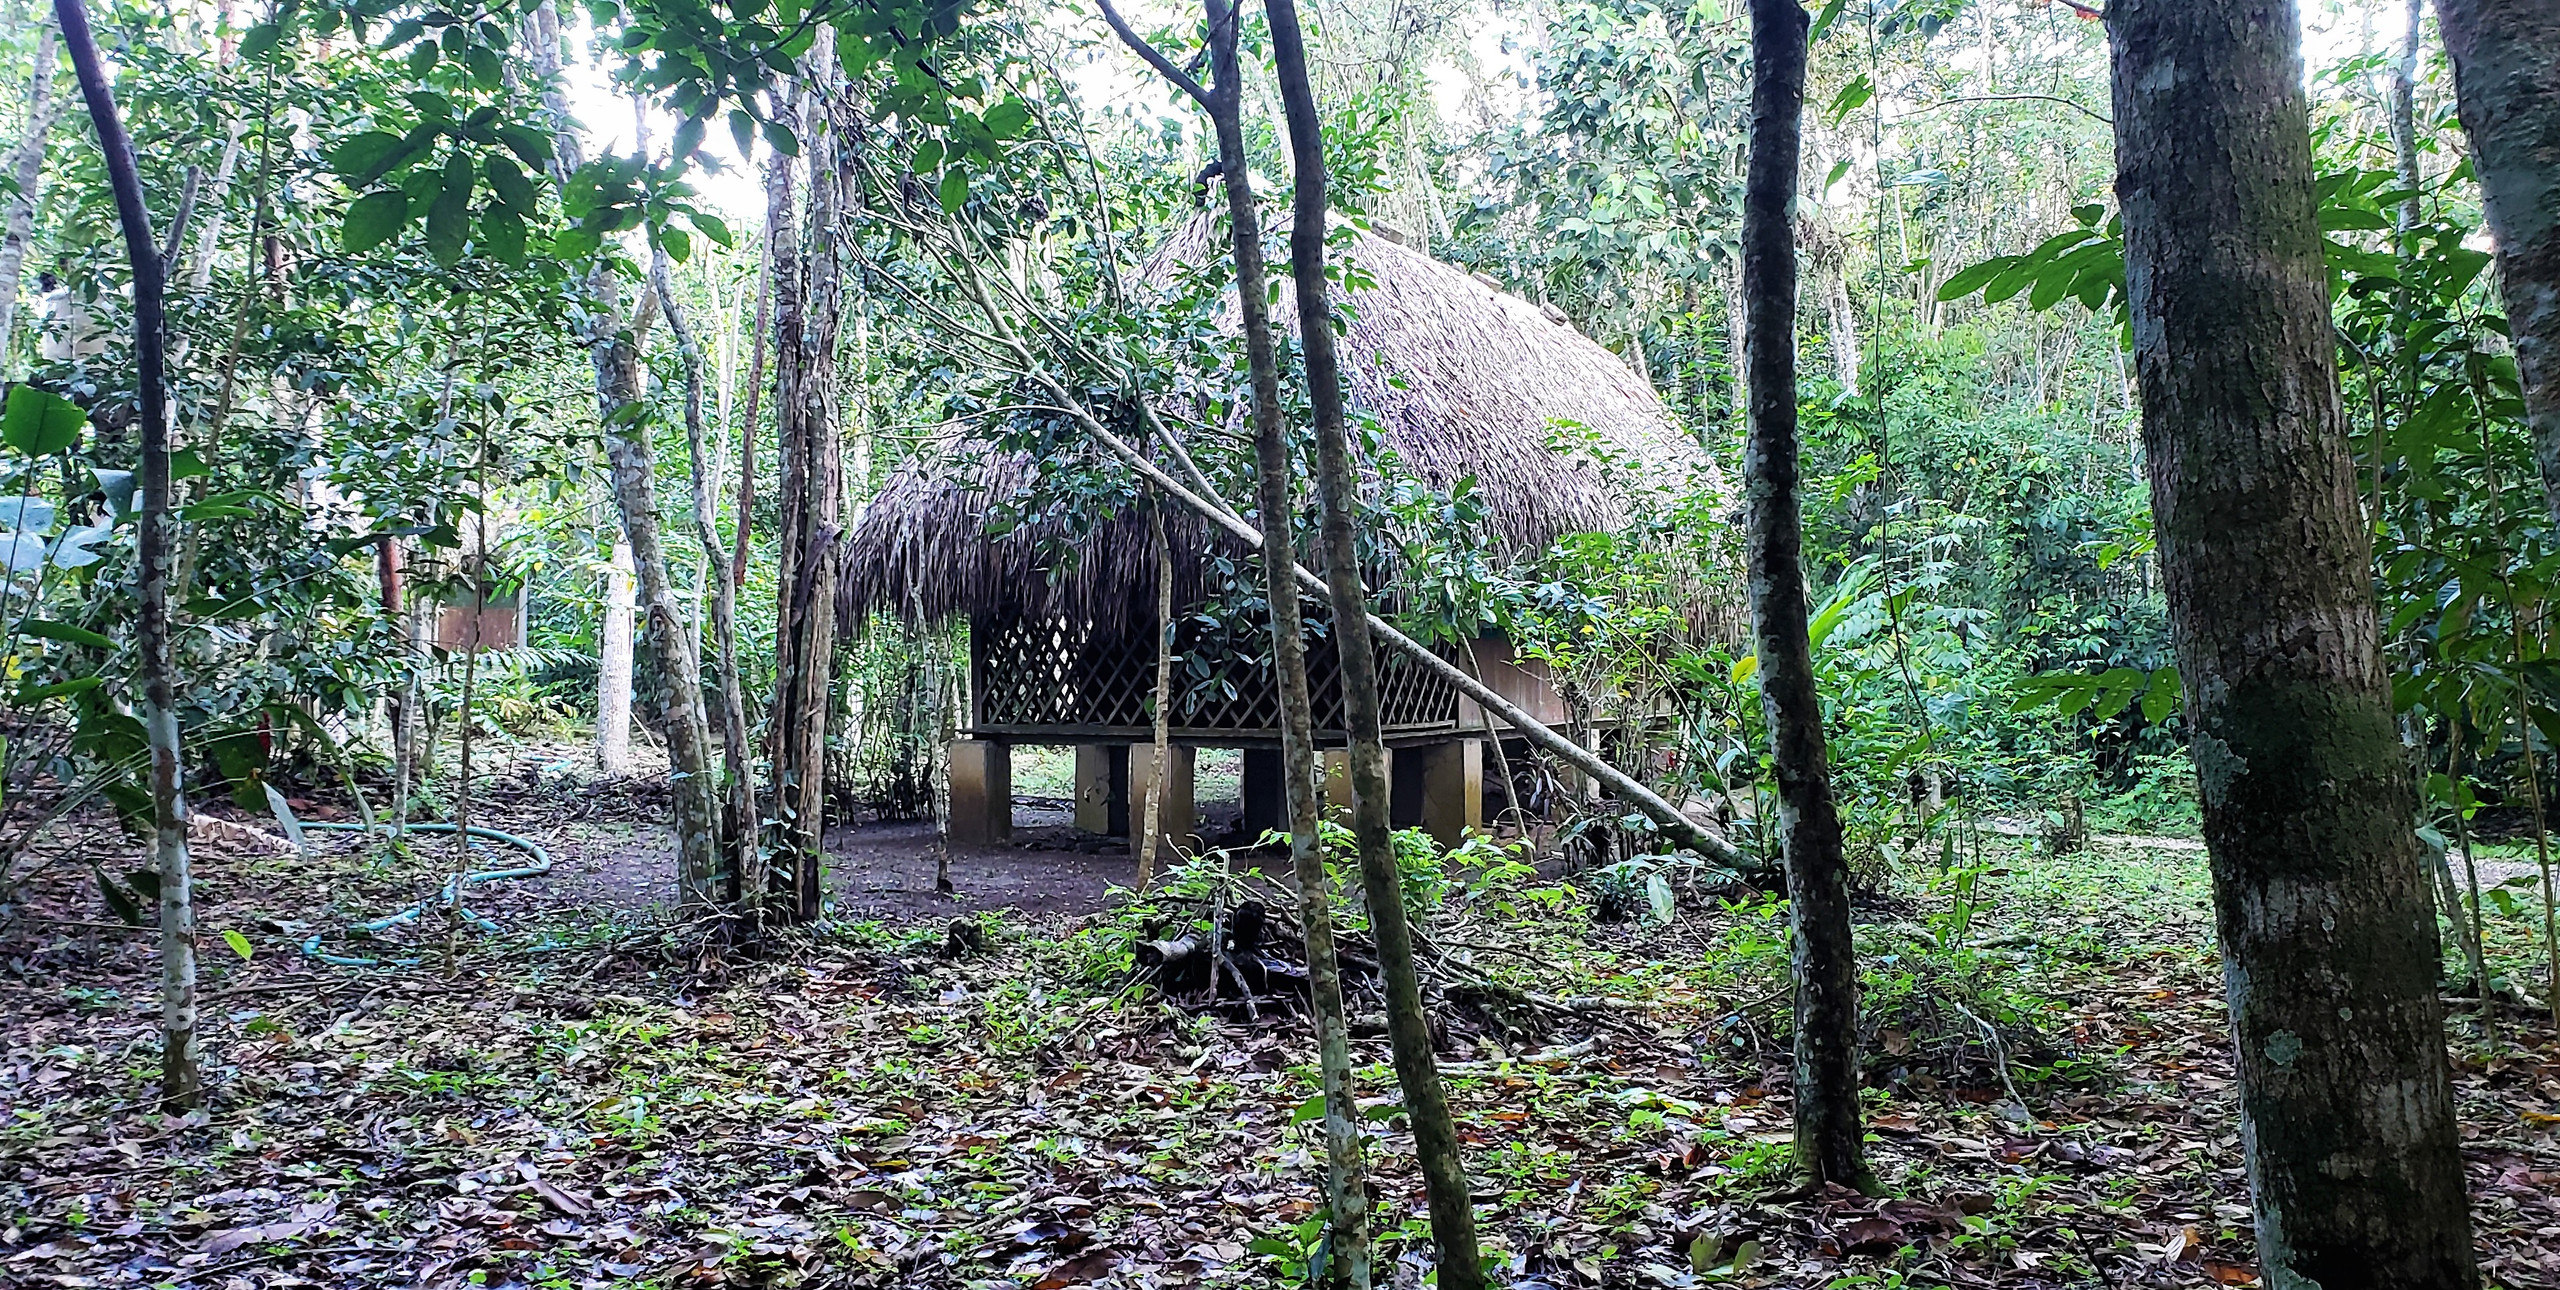 One of the guest cabins at Top Che Ecolodge